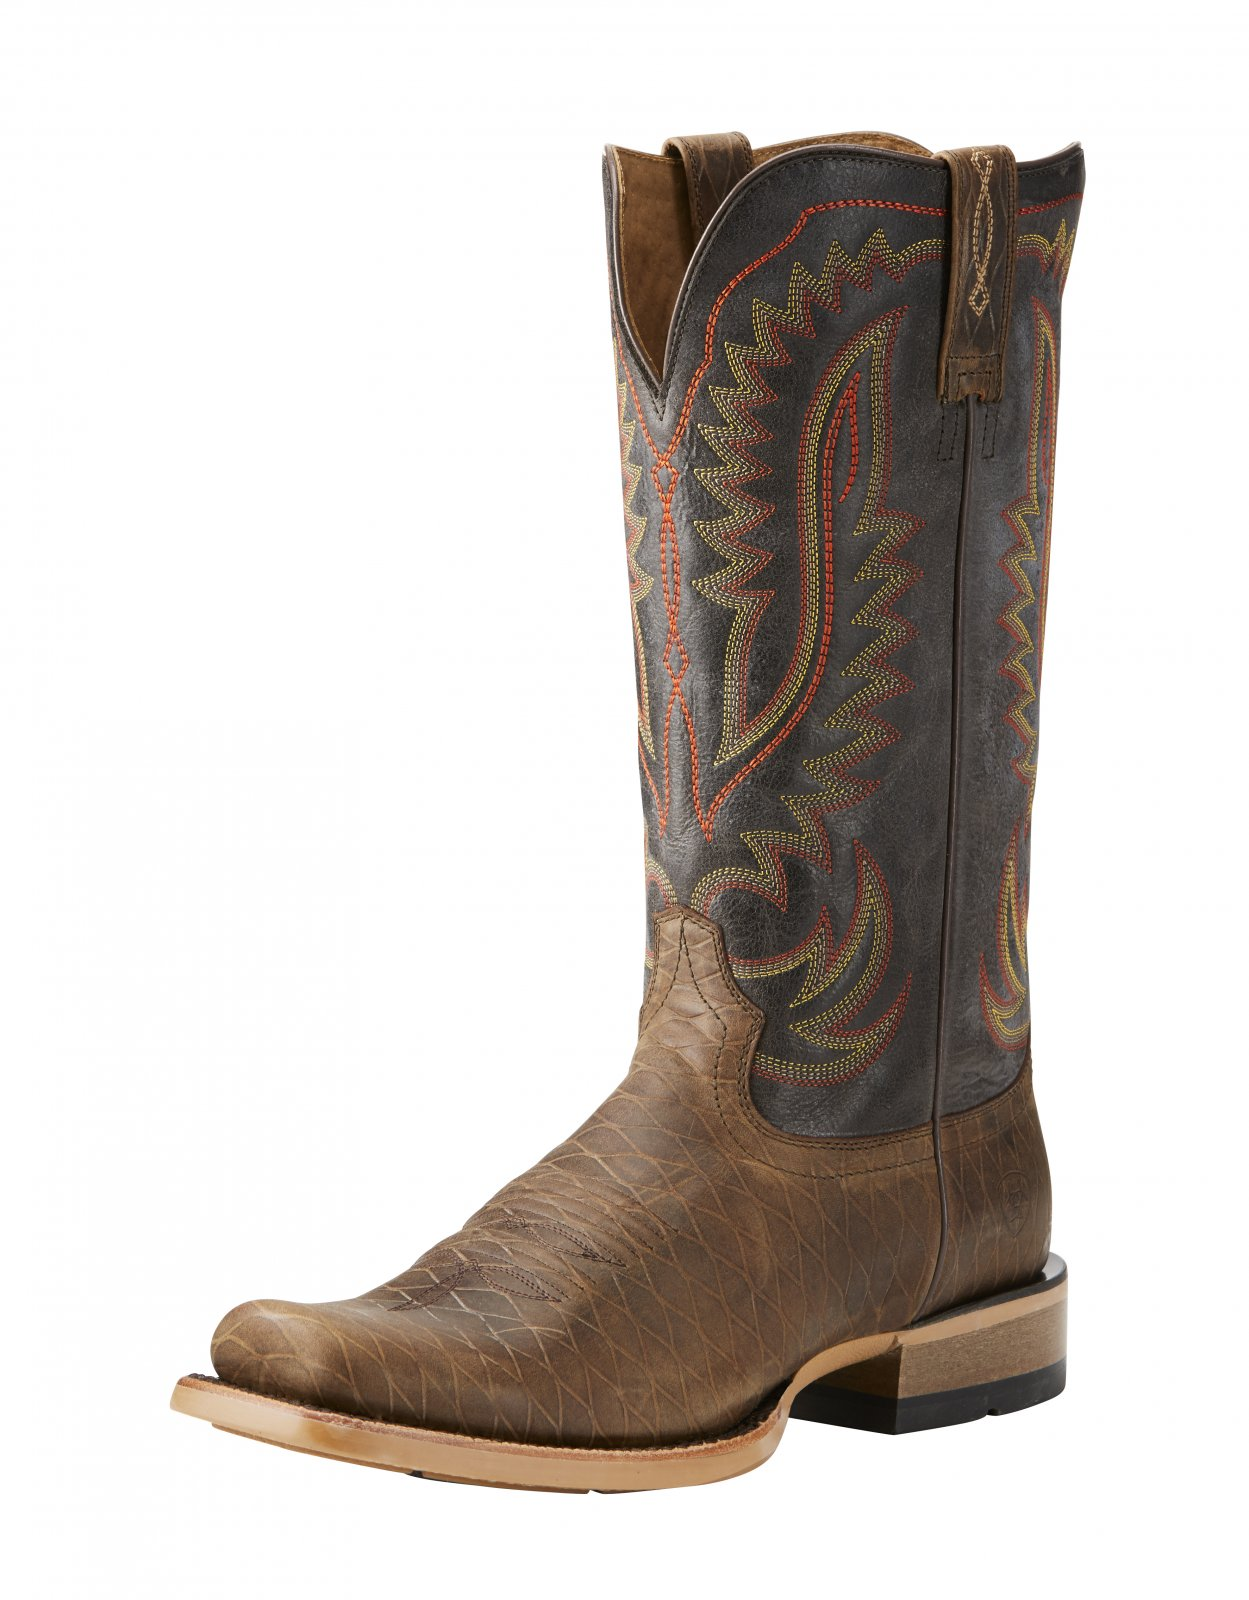 Palo Duro from Ariat